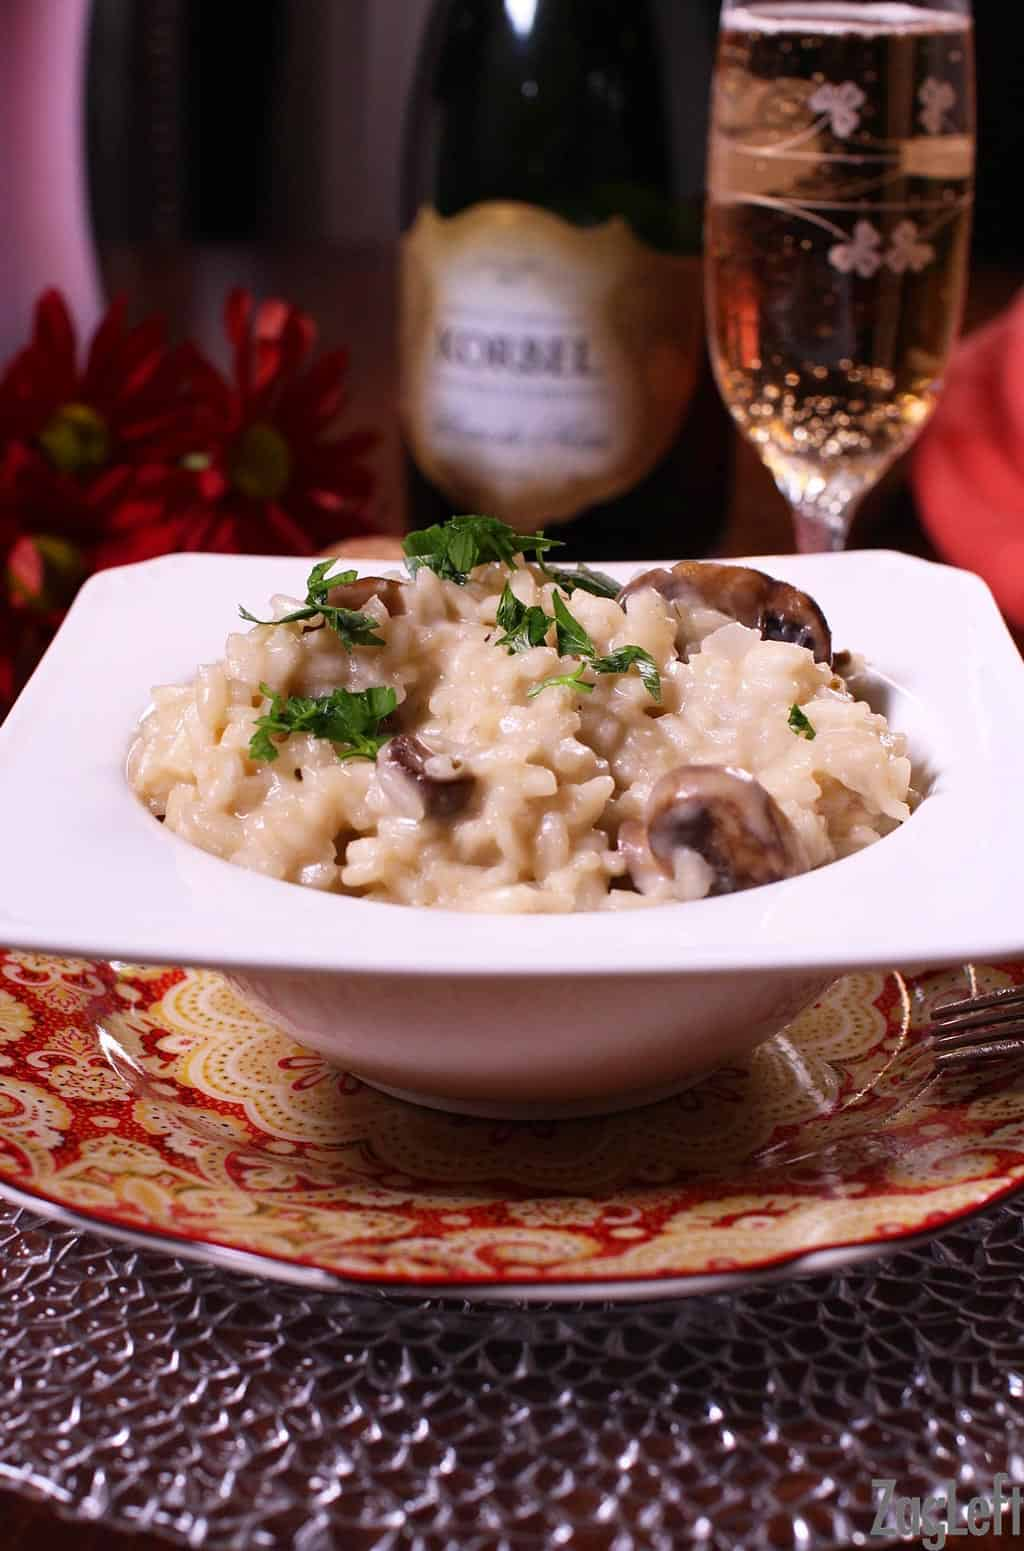 Champagne Risotto in a bowl plated next to a bottle and a flute of champagne